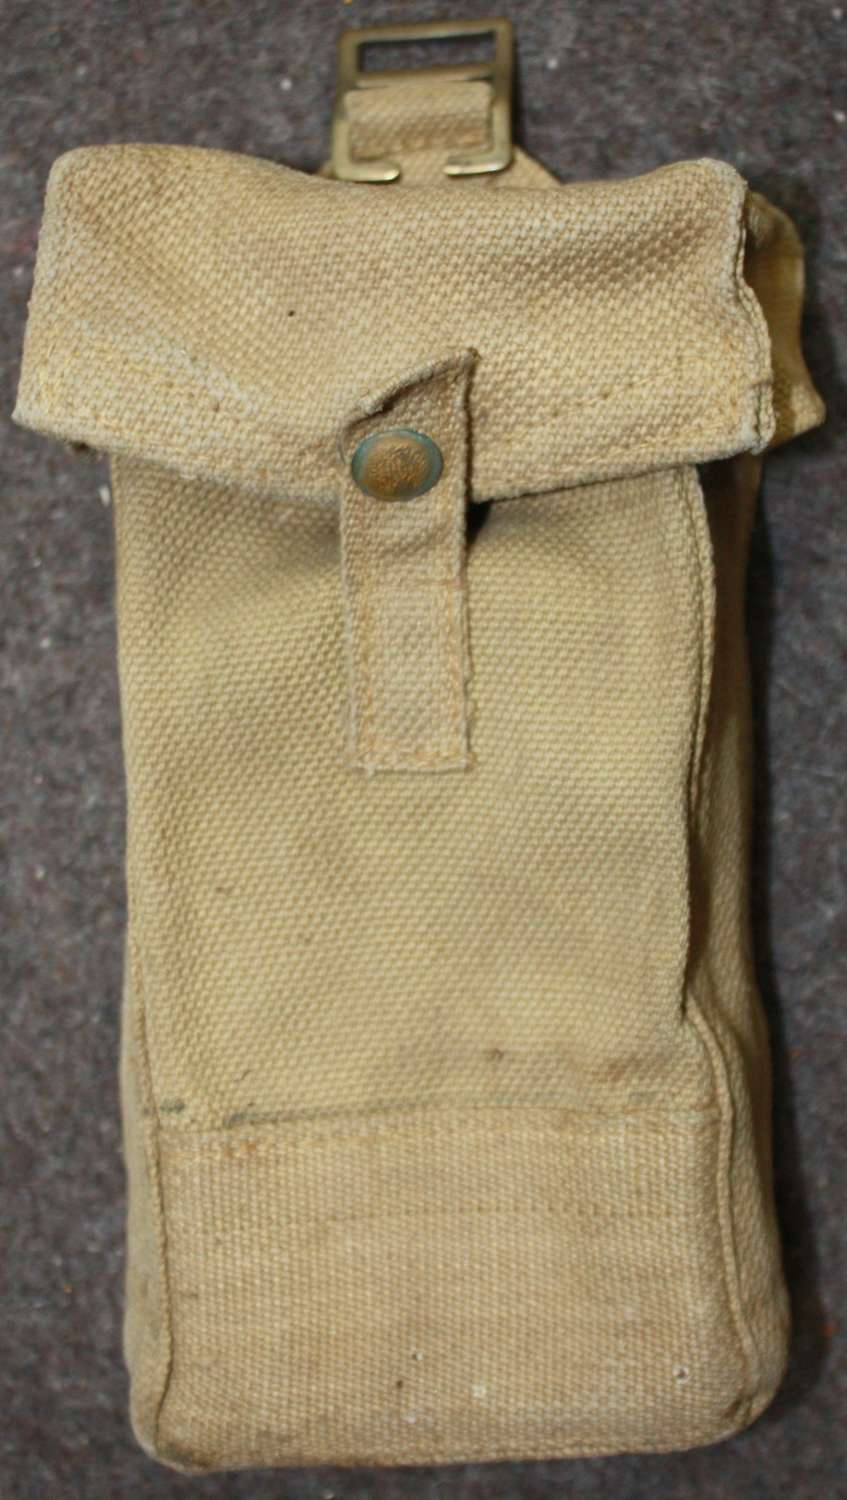 A VERY GOOD 1940 DATE MKII 37 PATTERN WEBBING AMMO POUCH